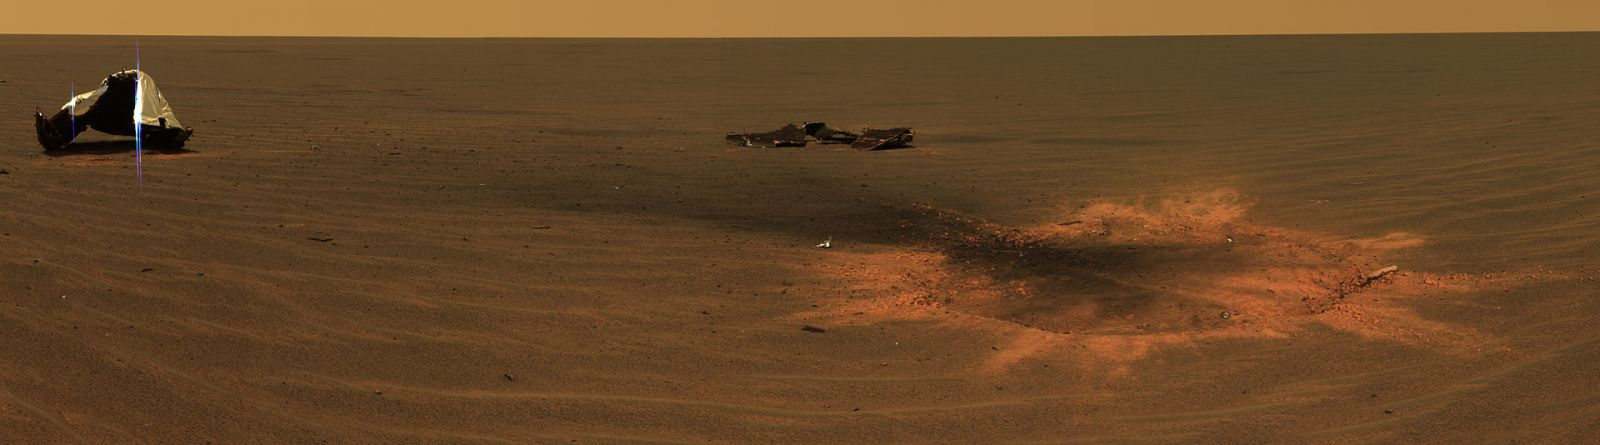 Opportunity touched down at Mars' Meridiani Planum in 2004 and began its scientific operations shortly thereafter. Image Credit: NASA / JPL-Caltech